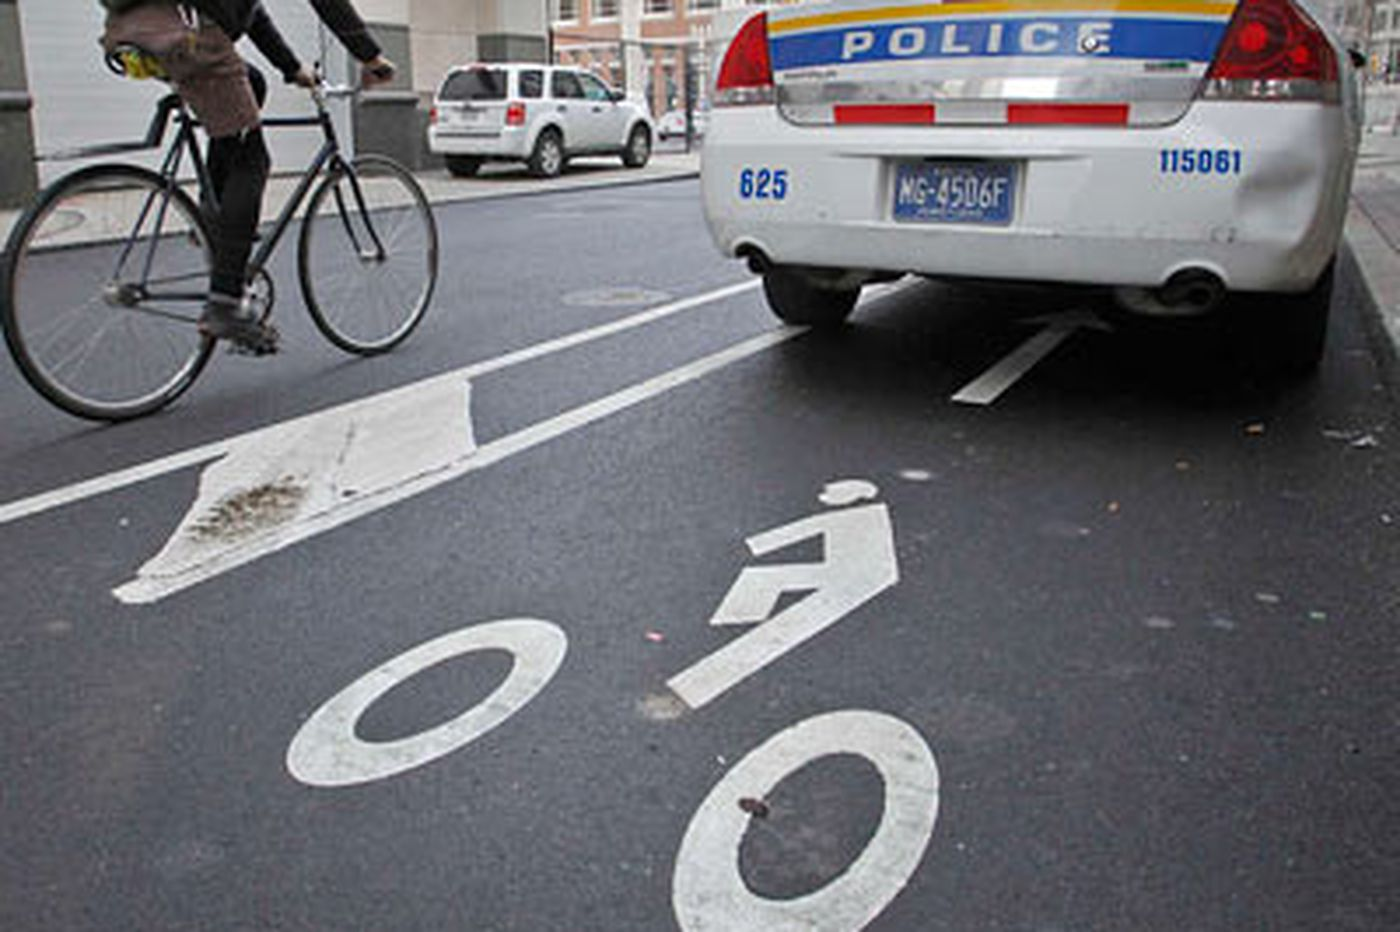 Bikers yield to cop cars